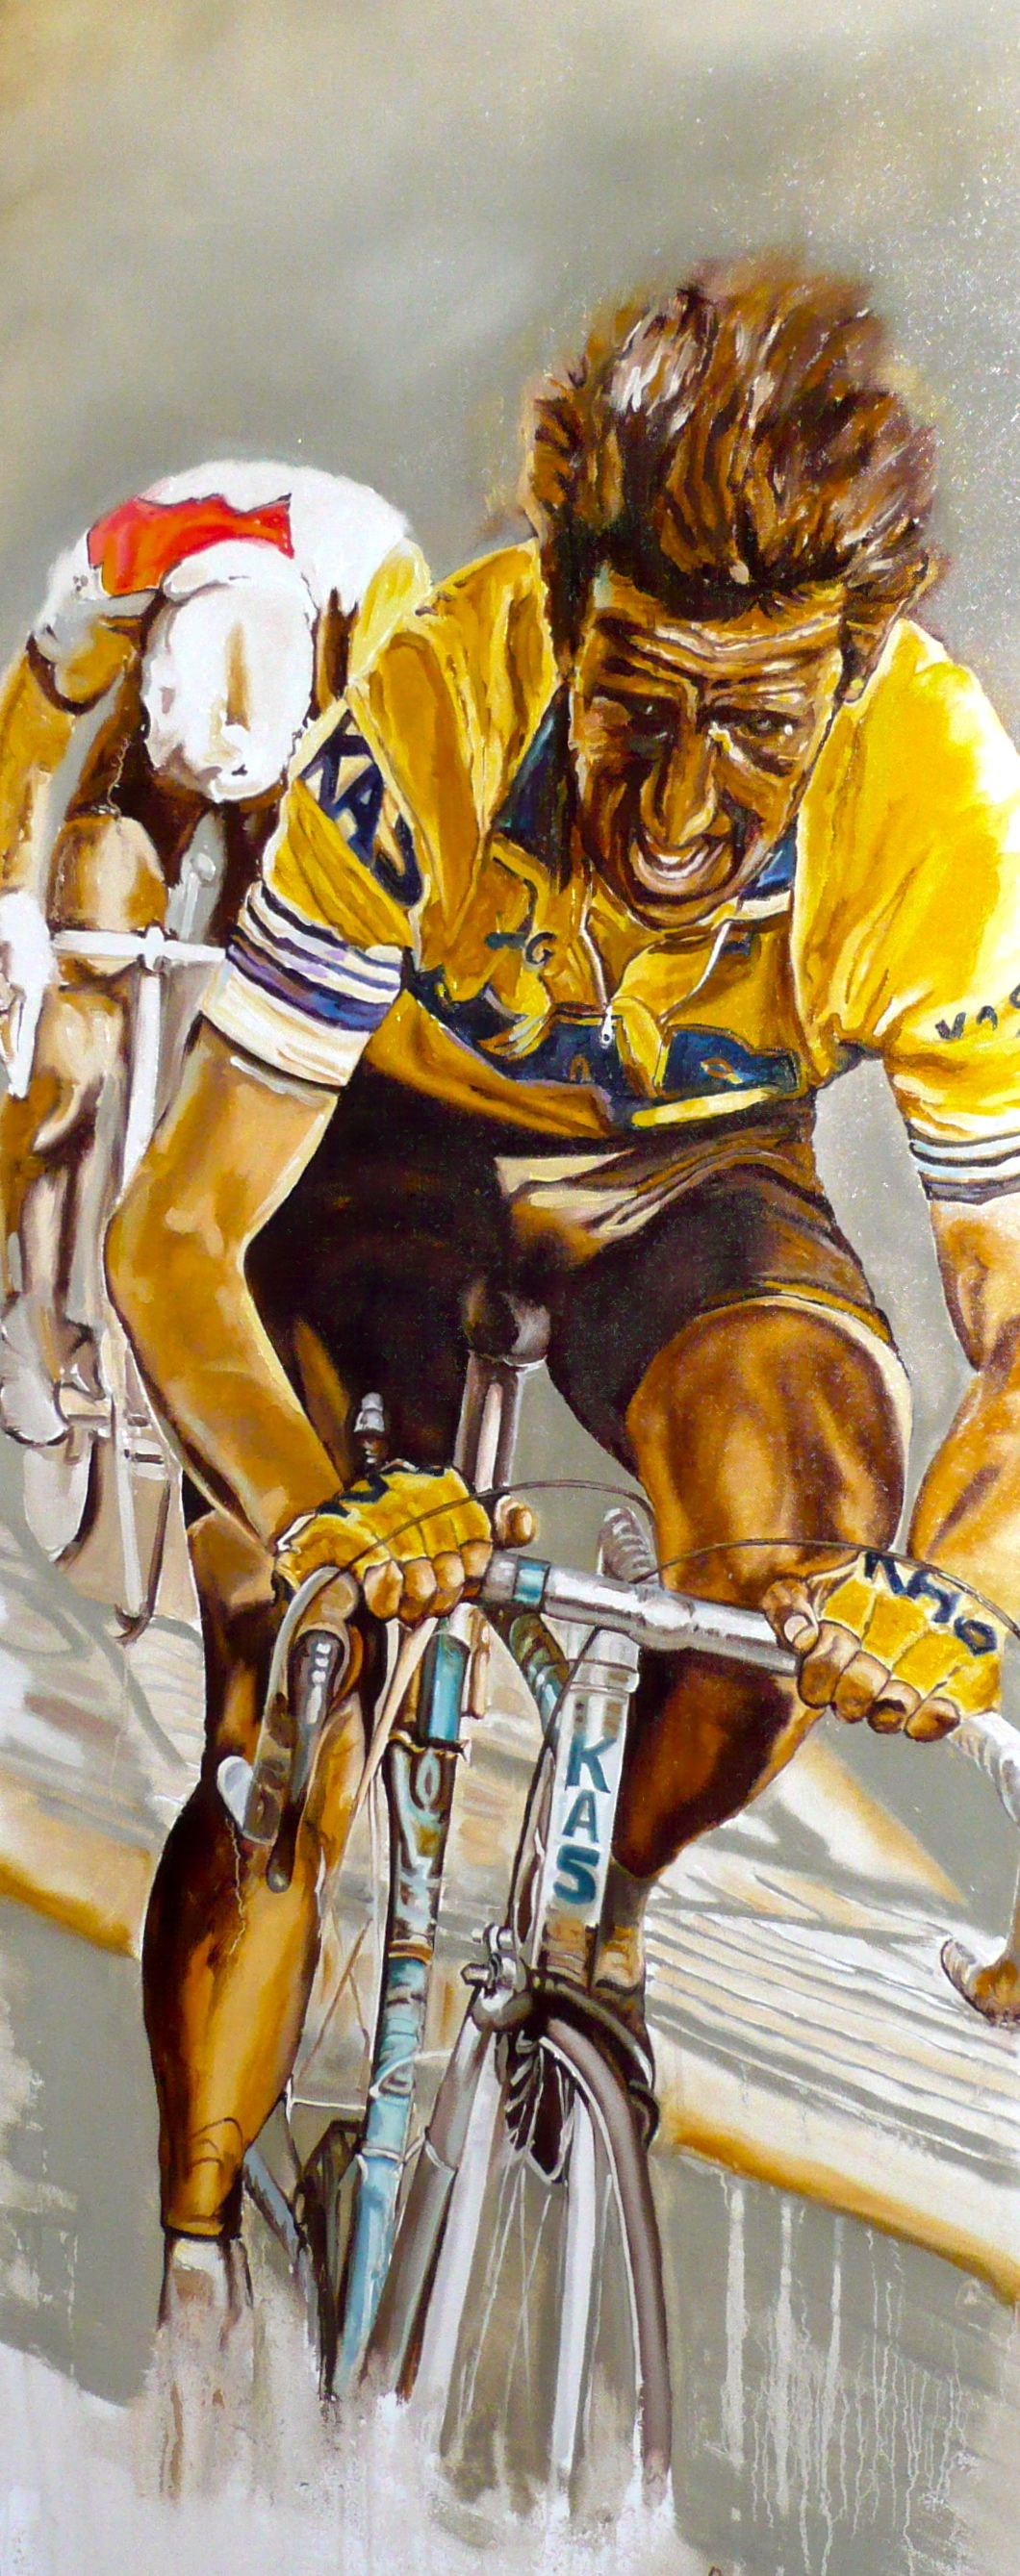 "Sean Kelly Print 18"" x 44"" Limited Edition of 150"